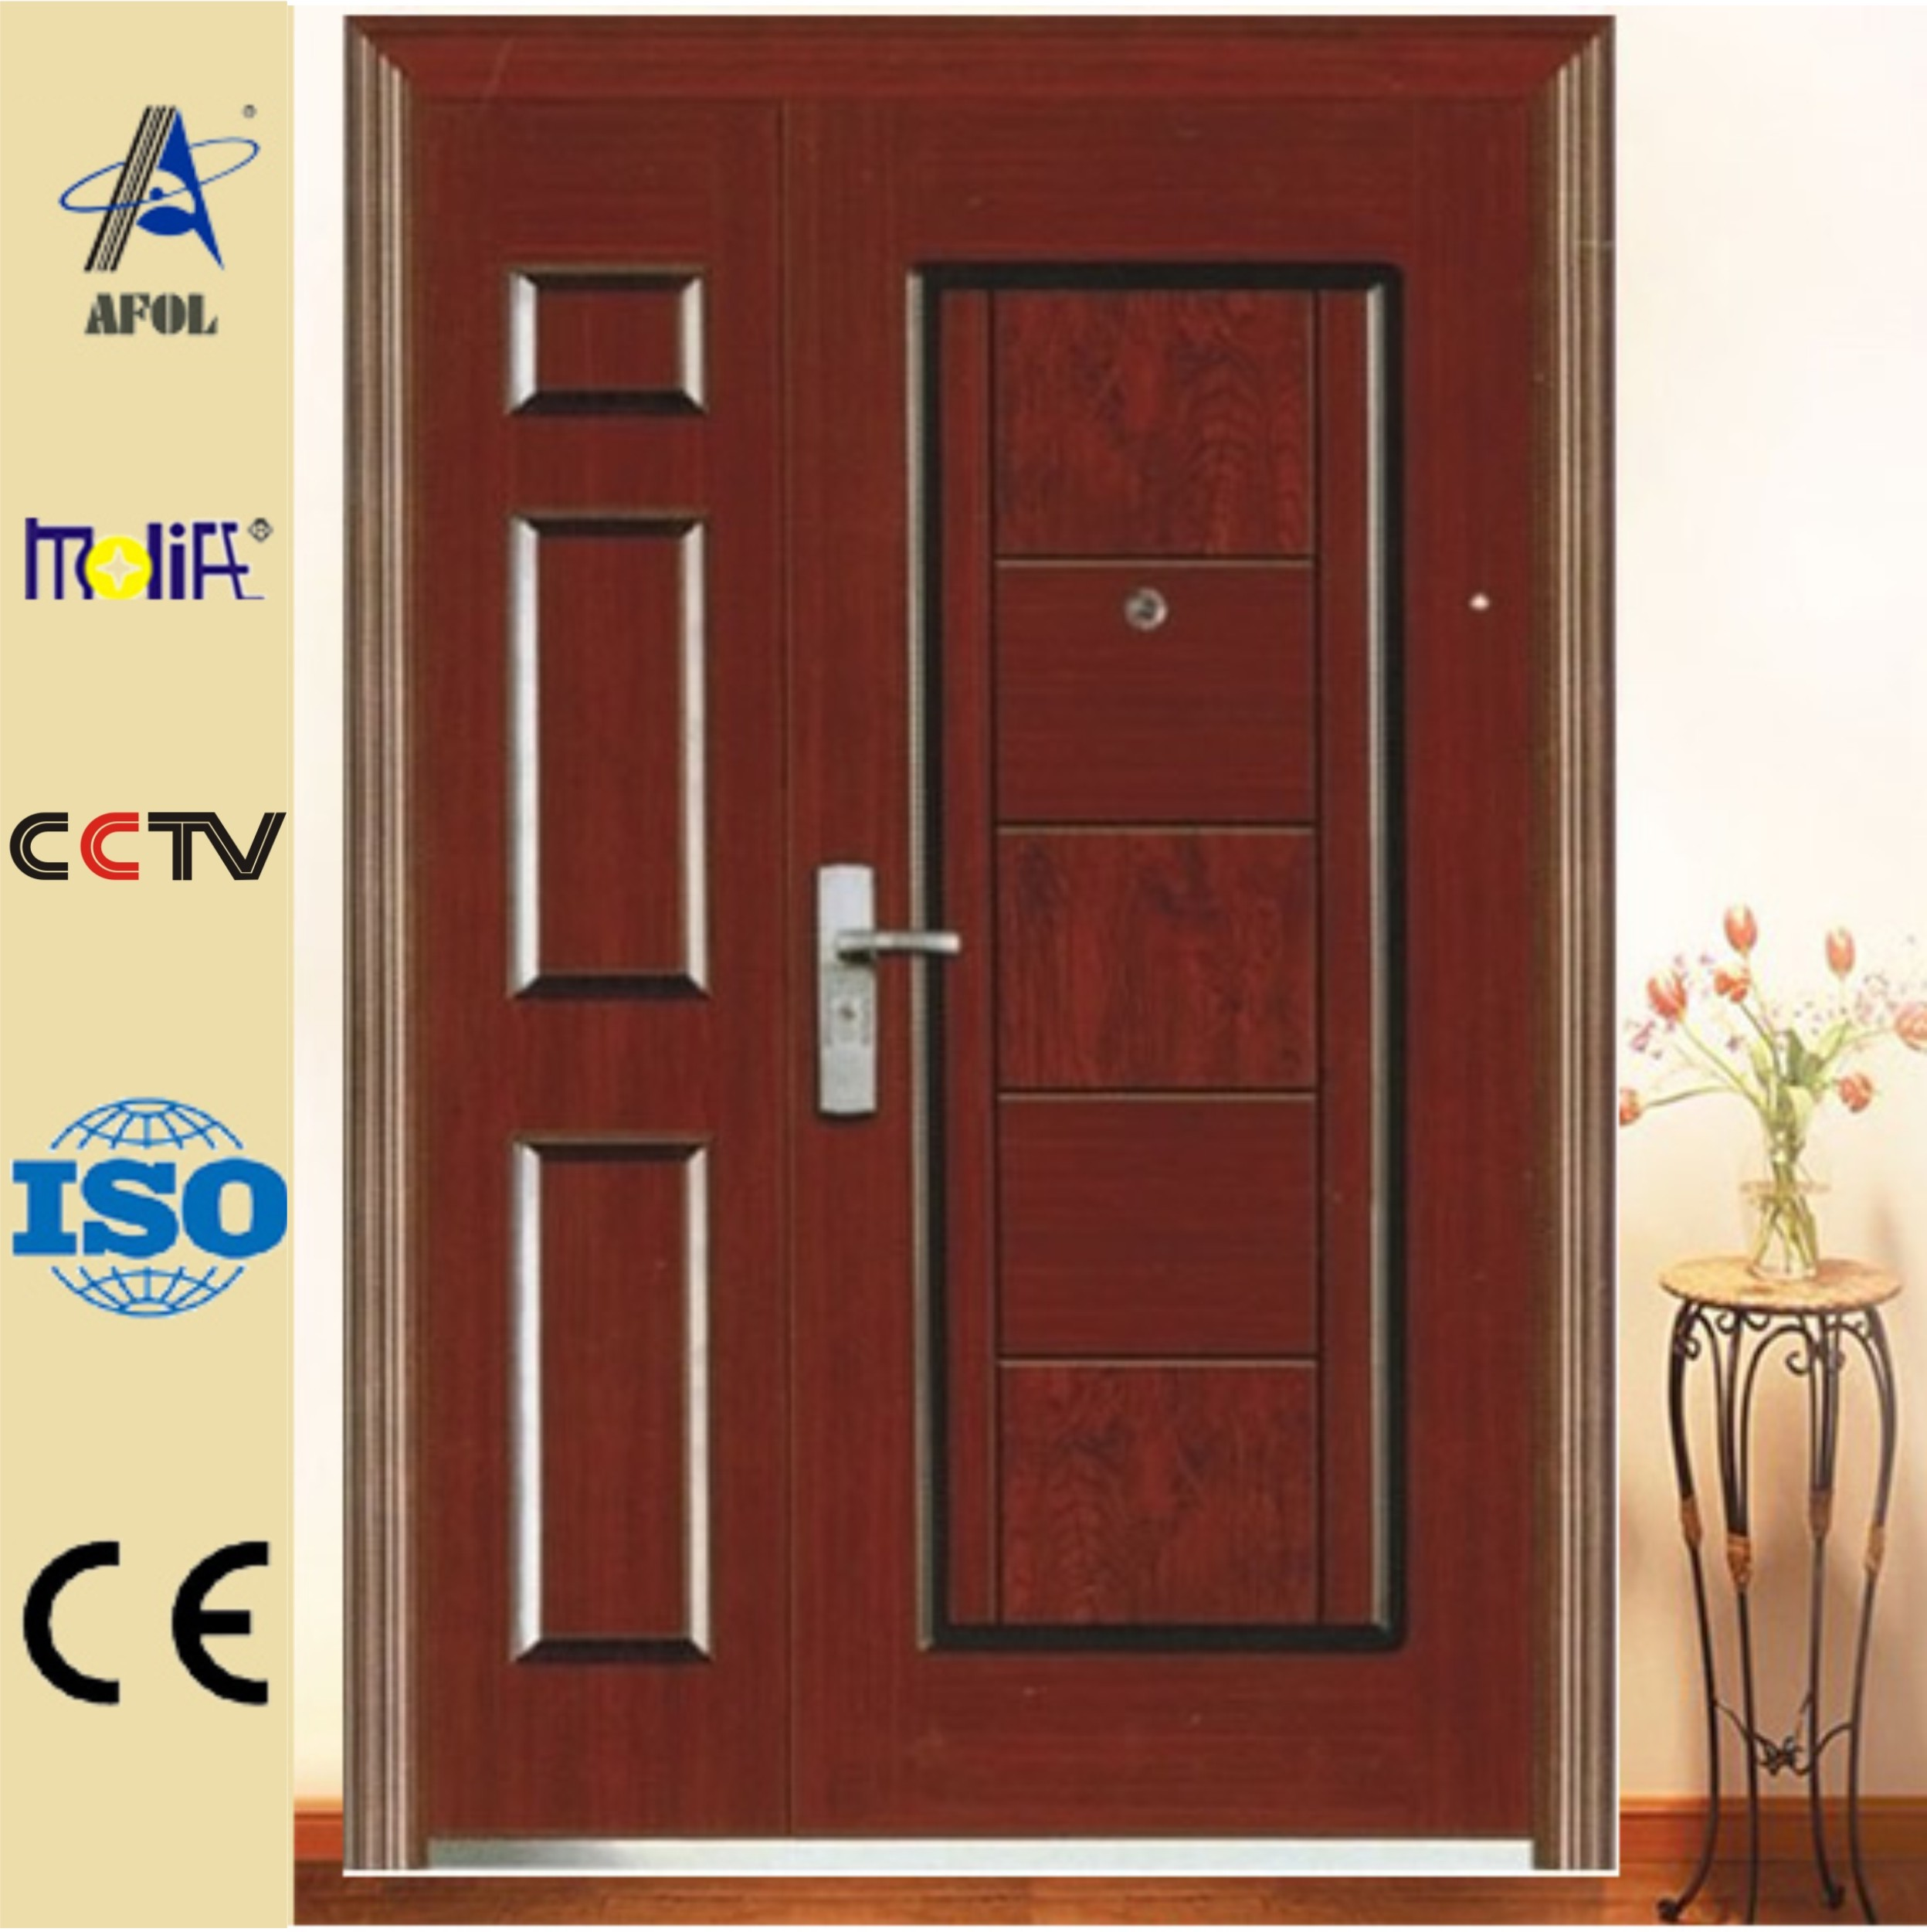 afol chinese supplier of doors design